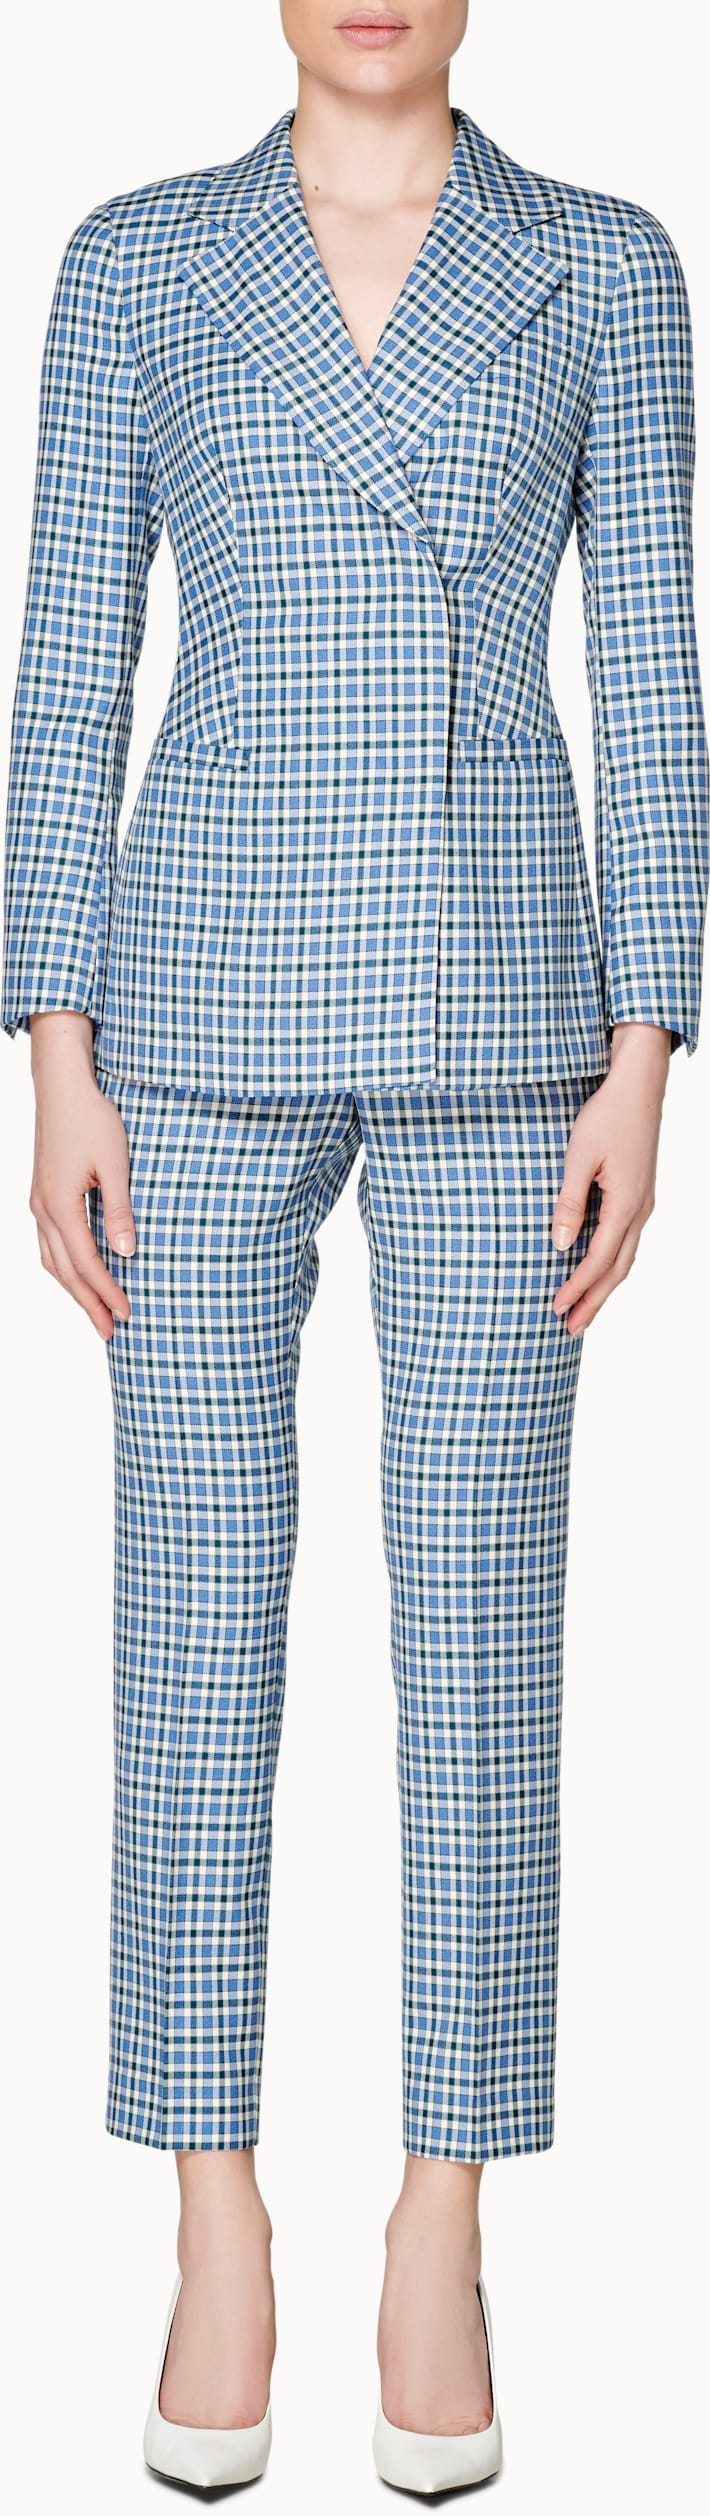 Cameron 4-Button Green & Blue Checked Suit